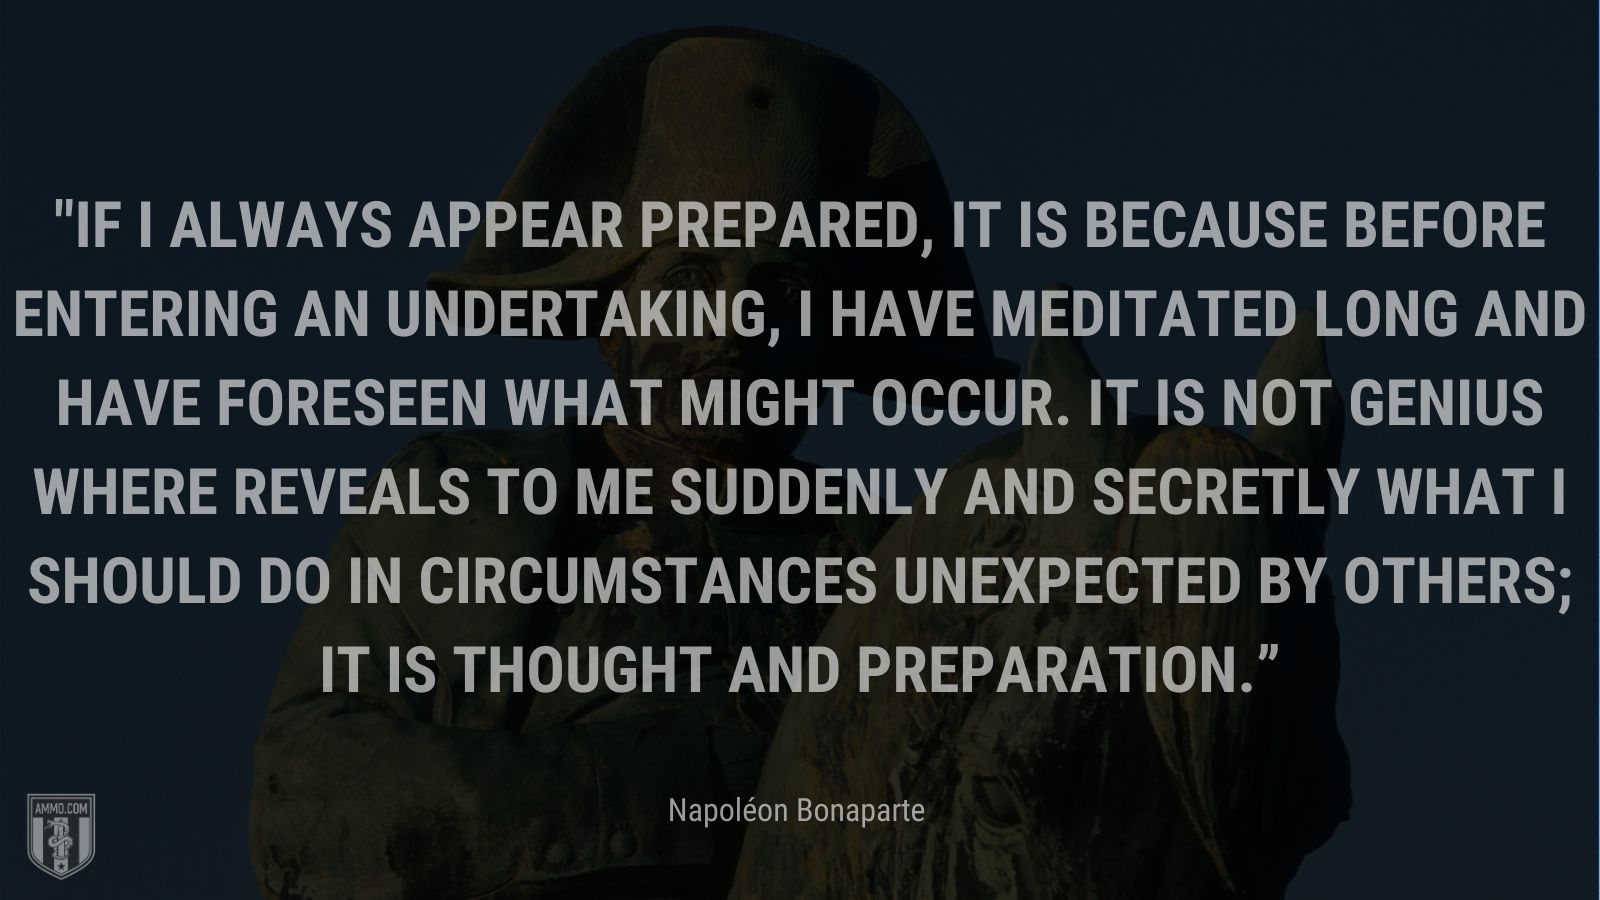 """""""If I always appear prepared, it is because before entering an undertaking, I have meditated long and have foreseen what might occur. It is not genius where reveals to me suddenly and secretly what I should do in circumstances unexpected by others; it is thought and preparation."""" - Napoléon Bonaparte"""